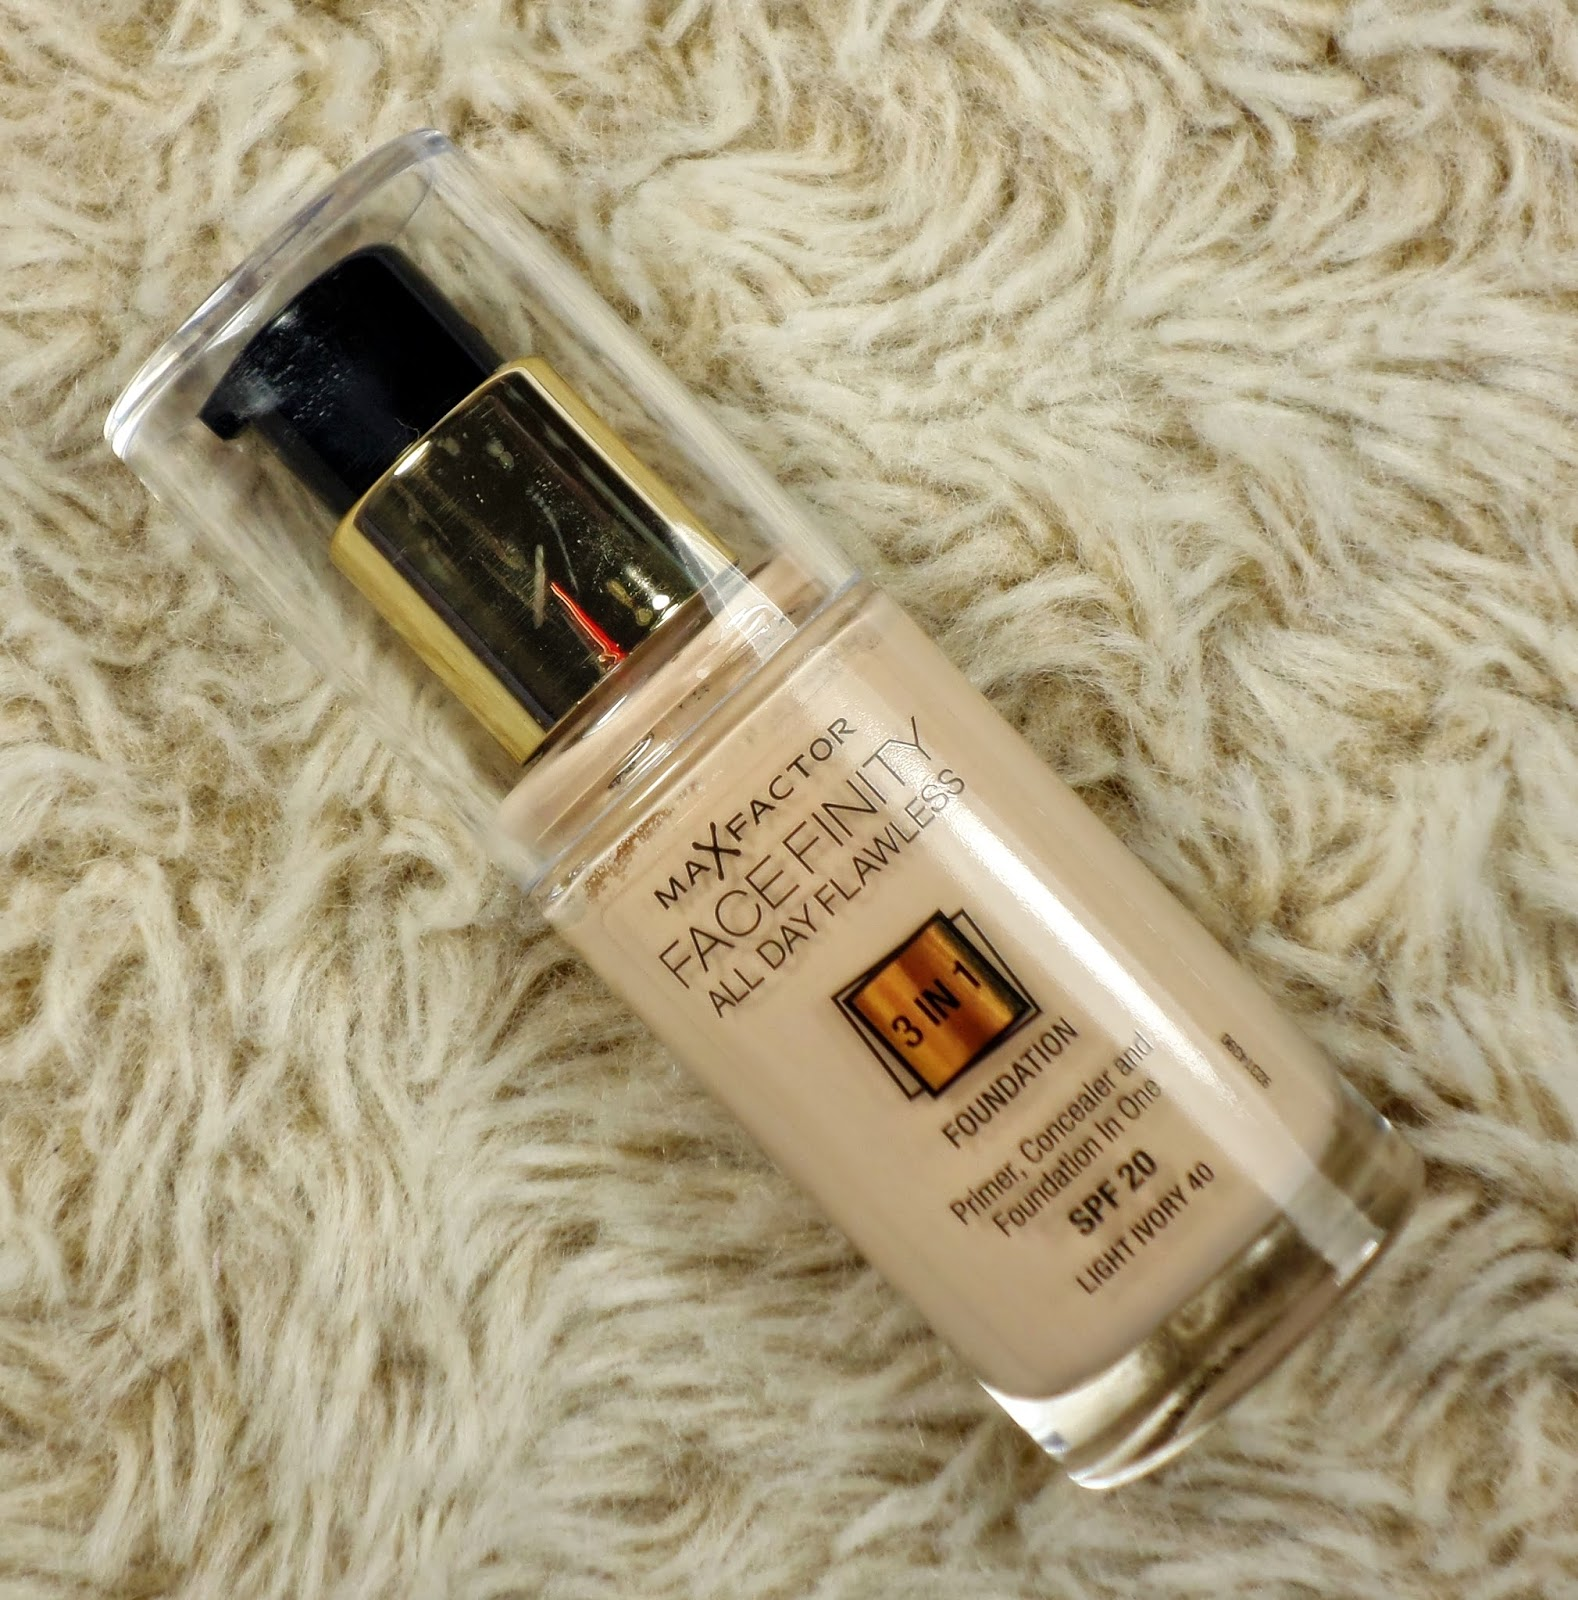 Max Factor Facefinity 3 in 1 Foundation in Light Ivory 40